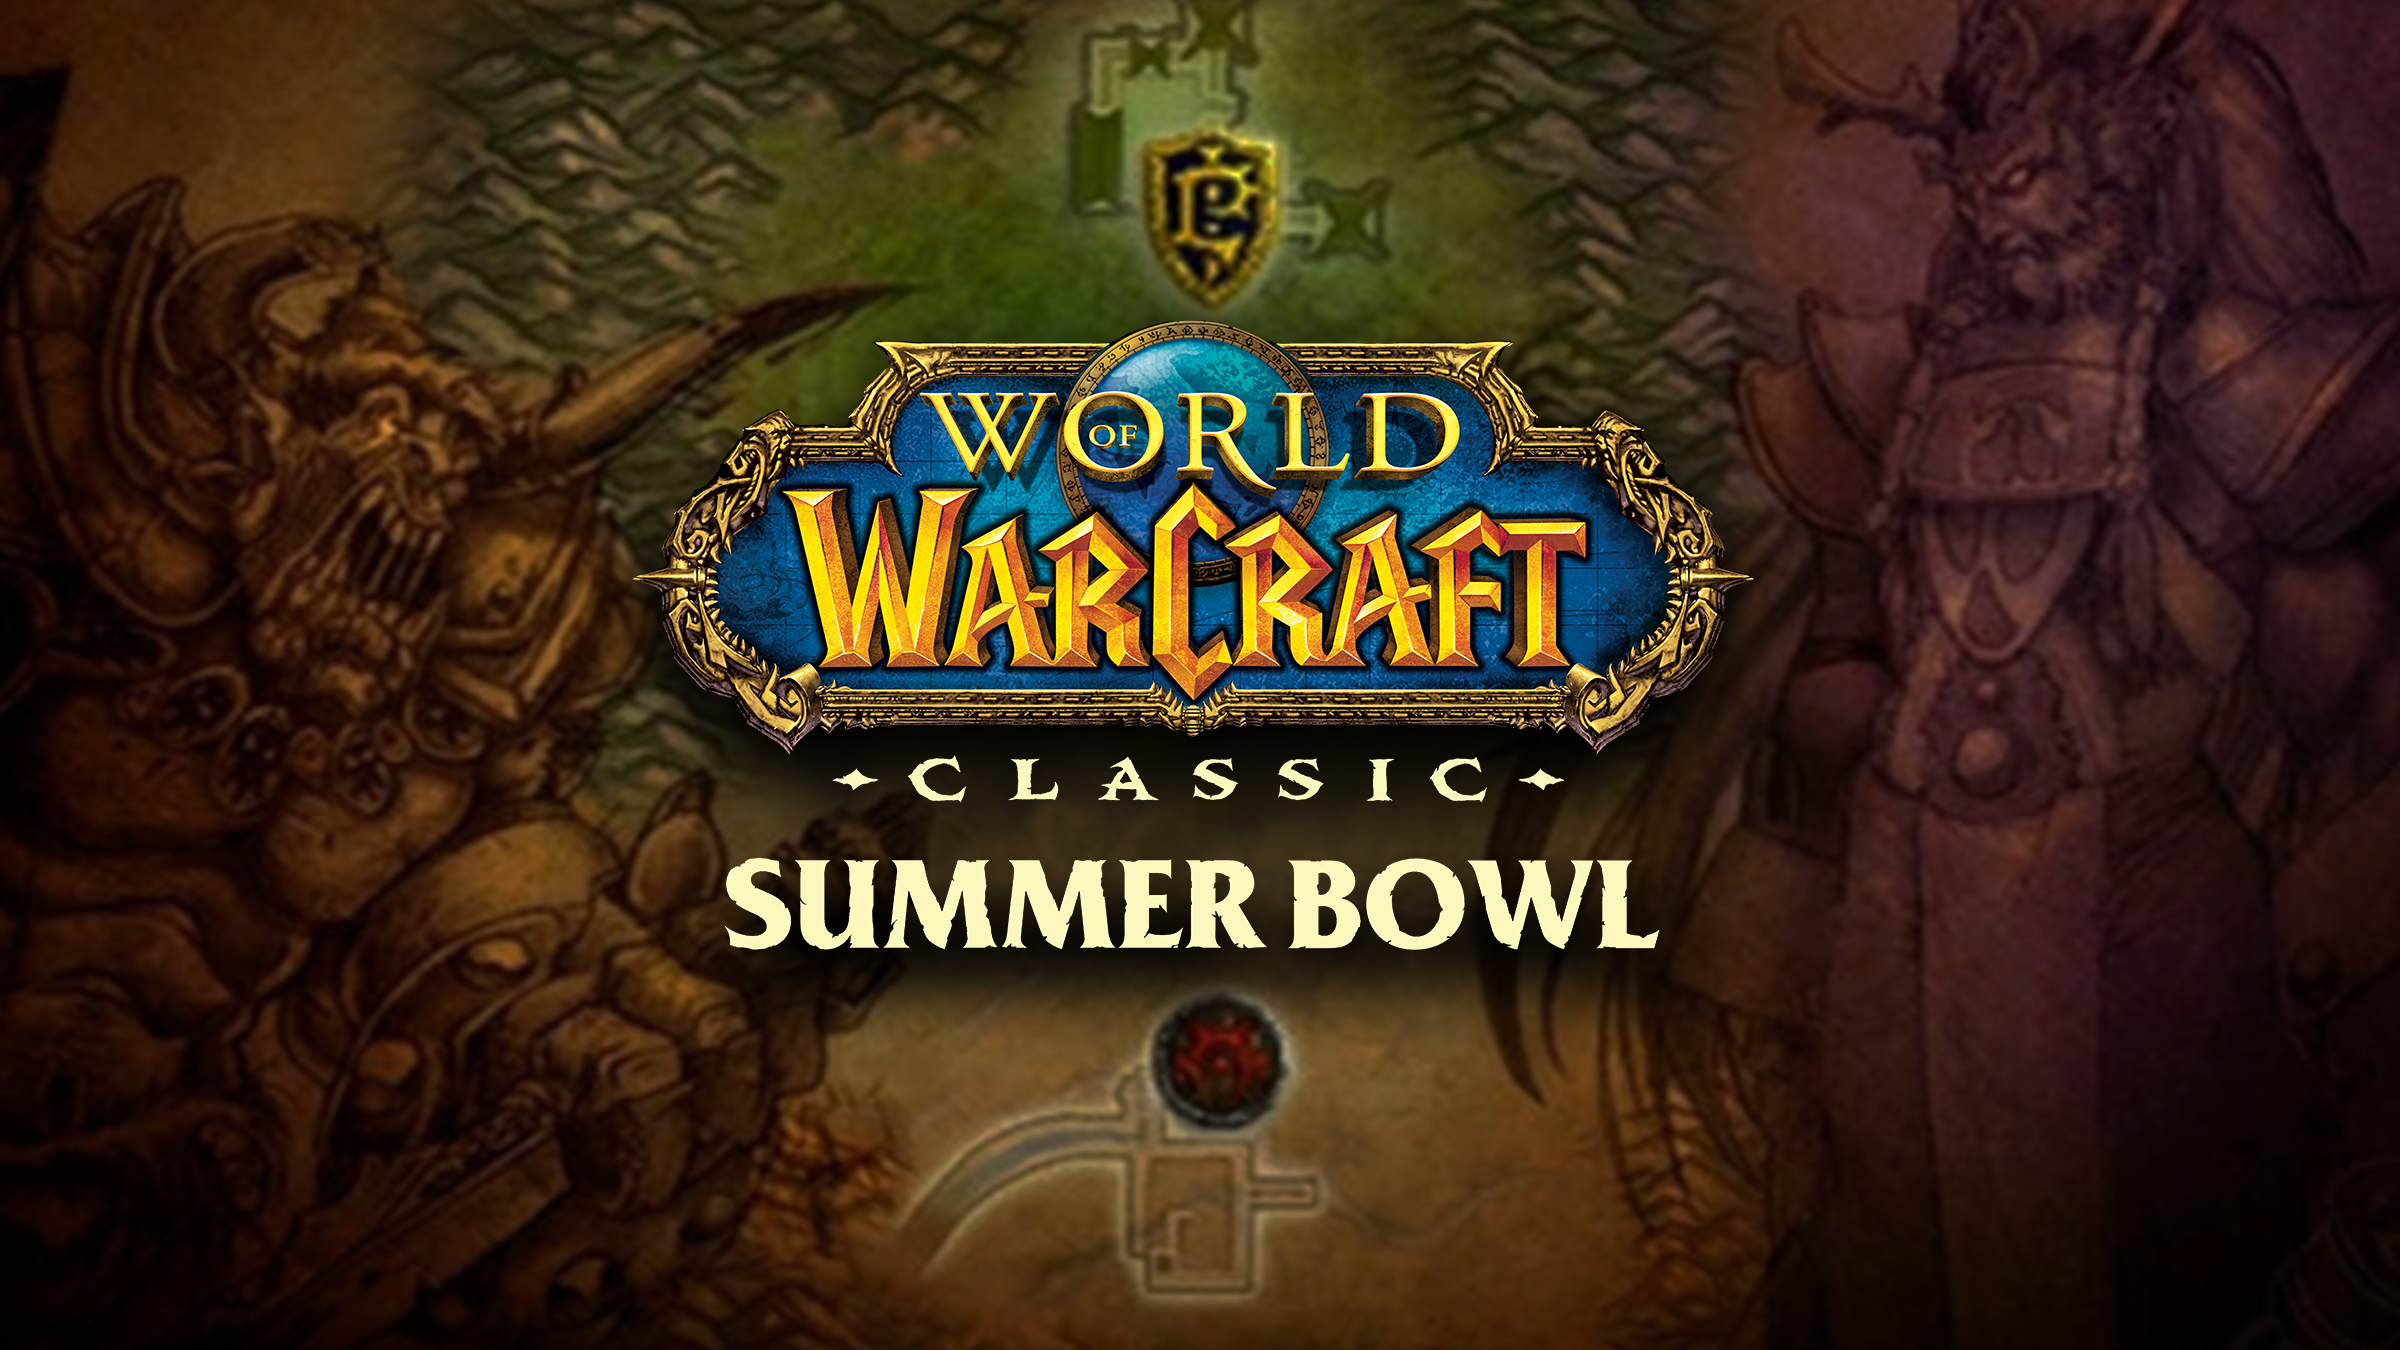 Wir stellen den World of Warcraft Classic Summer Bowl vor!